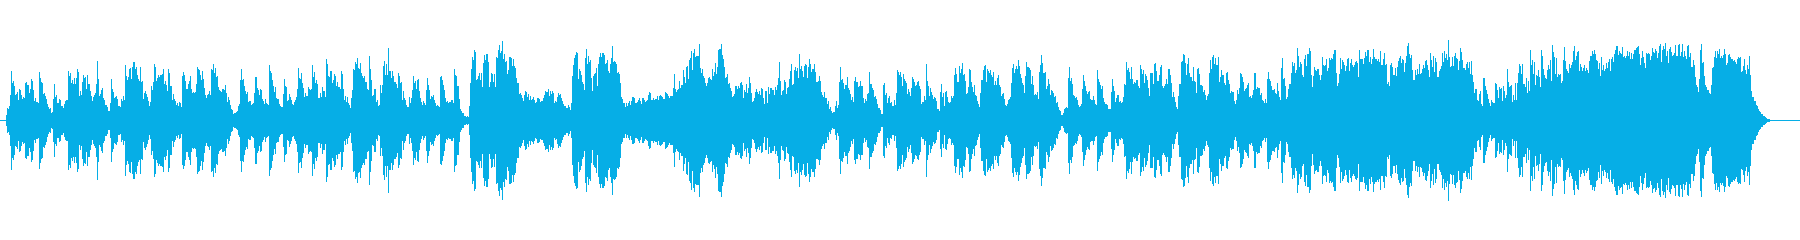 Elegant, lovely, classical waltz melody's reproduced waveform